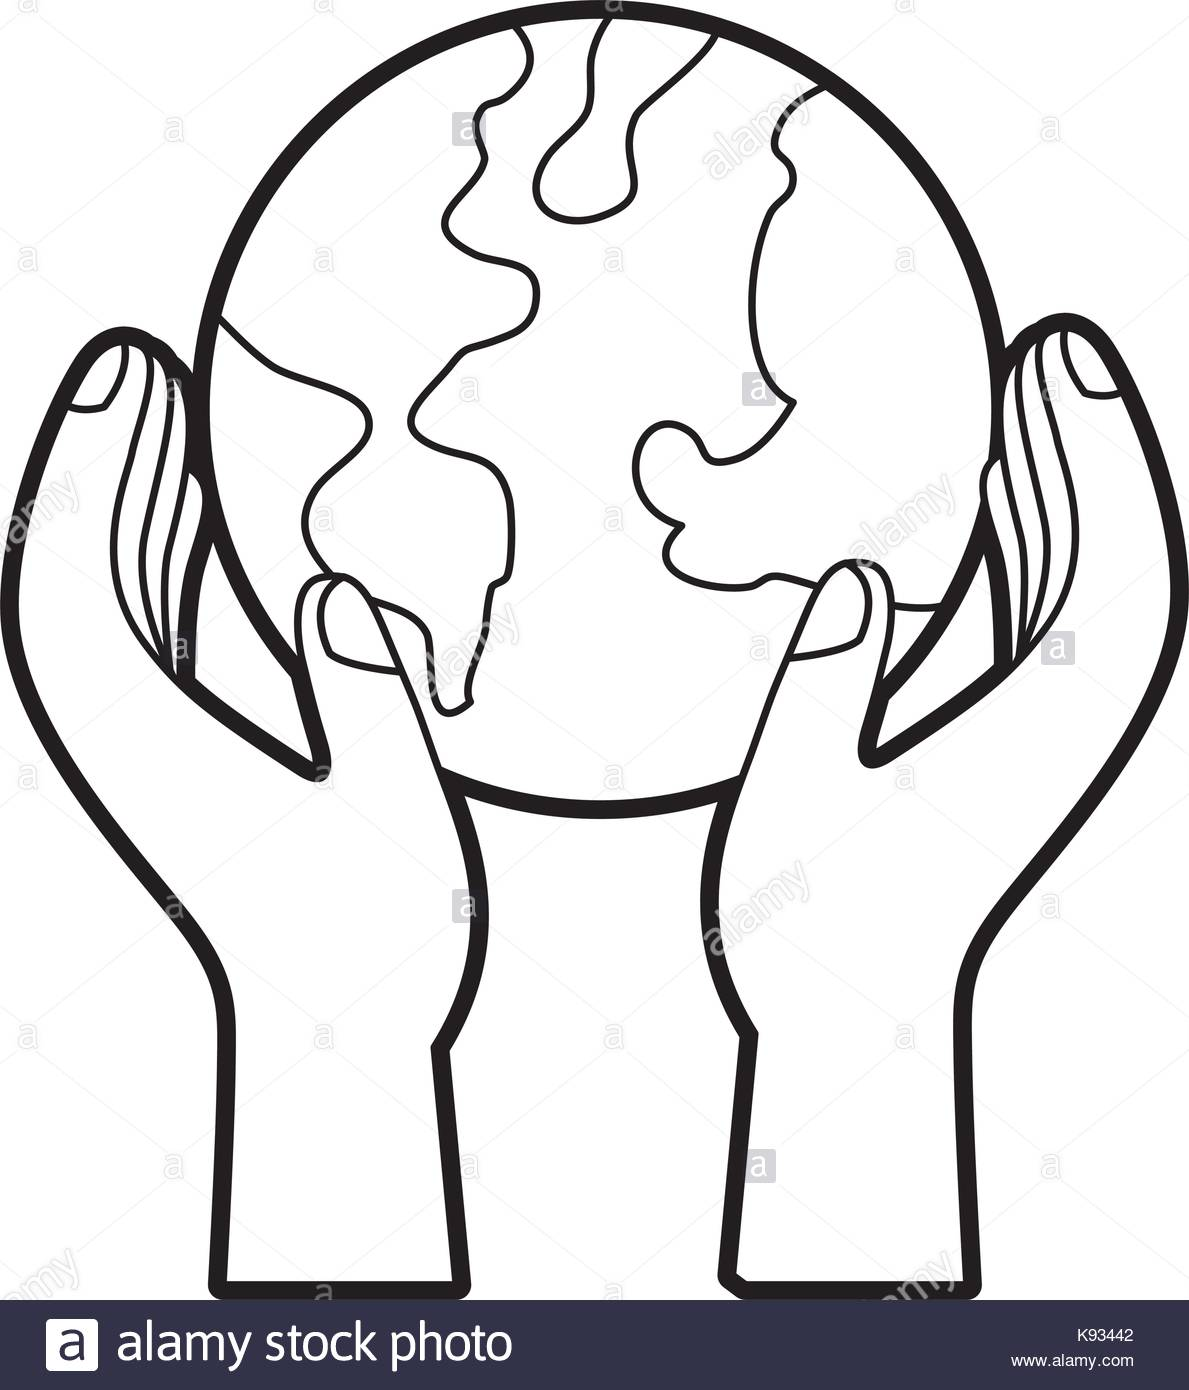 1189x1390 Hands Holding Planet Earth Ecological Environmental Concept Stock